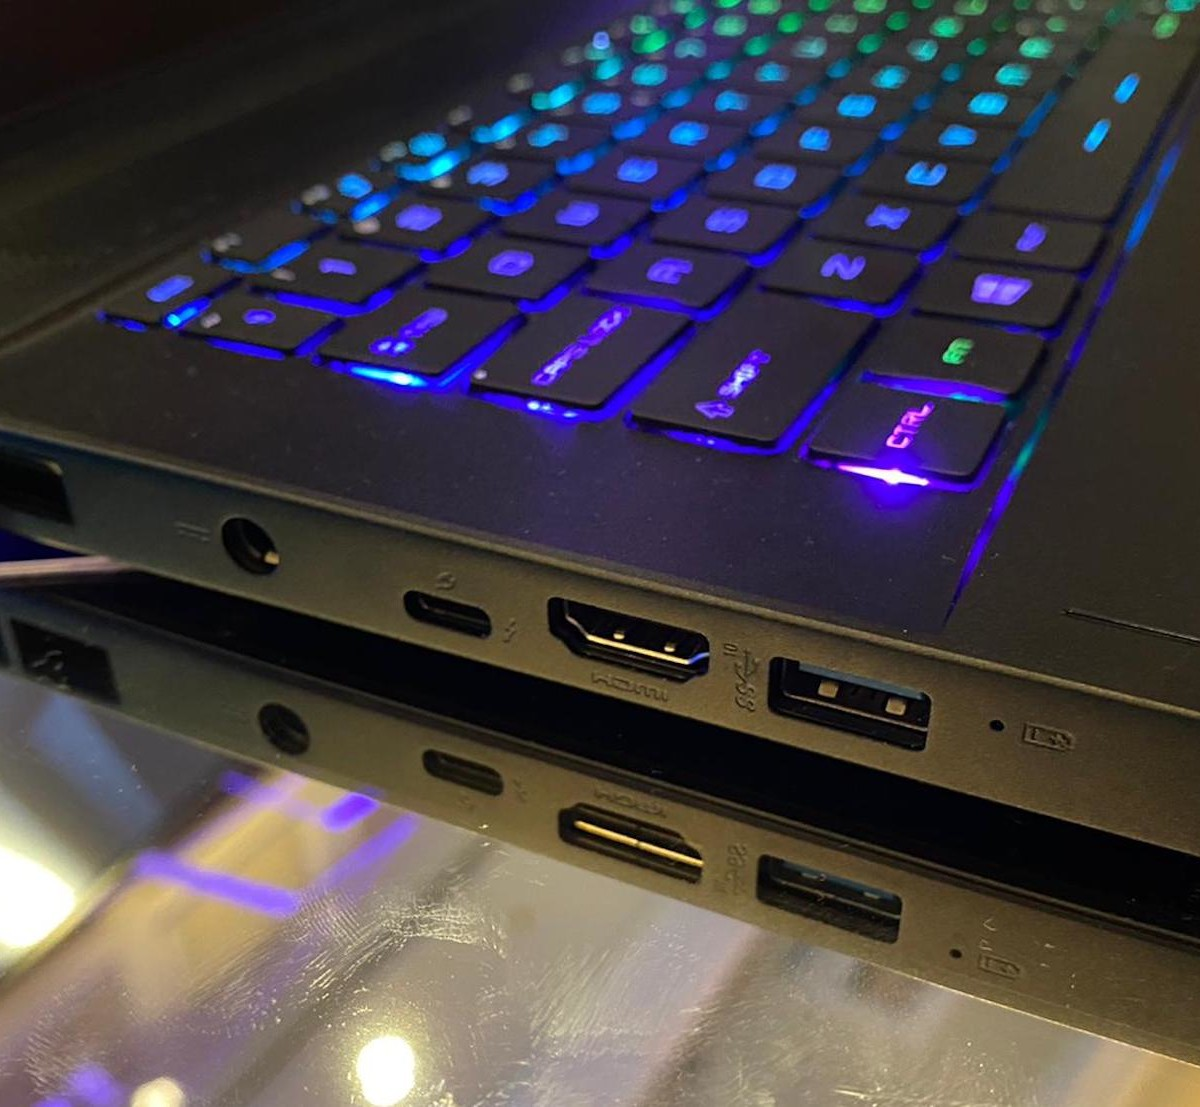 The Msi Gs66 Stealth Packs A 99 9 Whr Battery Capacity